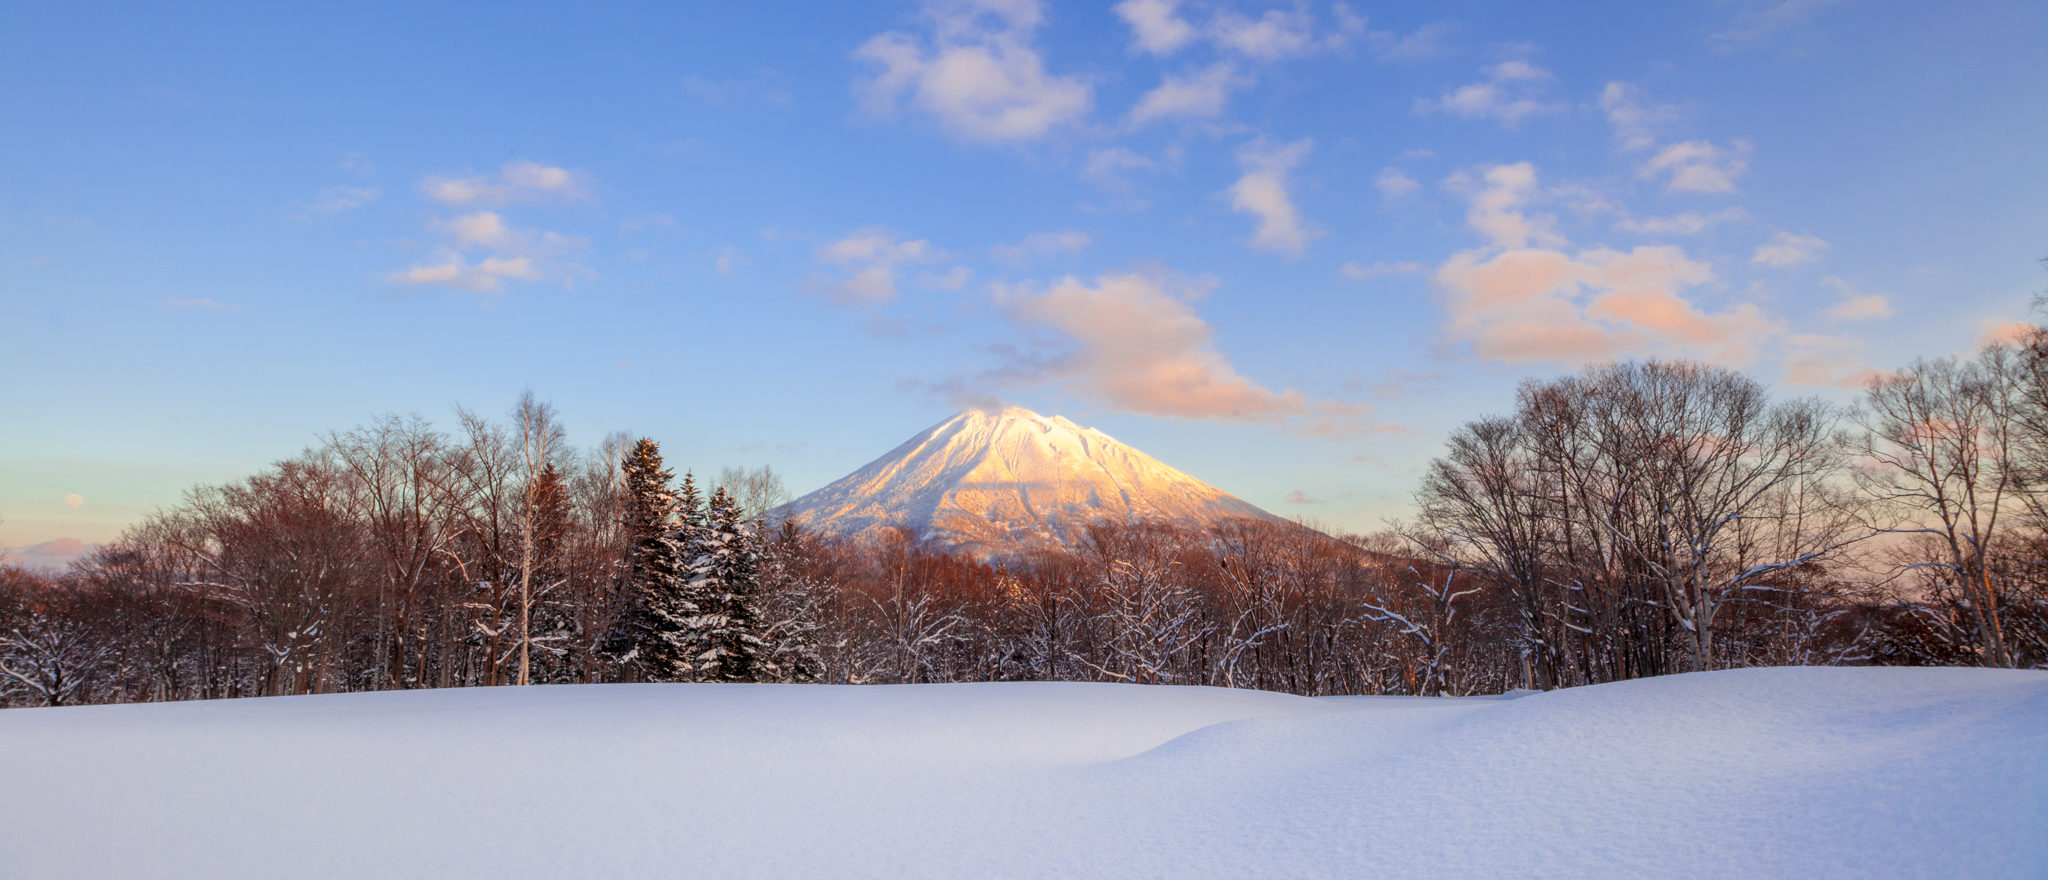 Snow on Mt Yotei photography